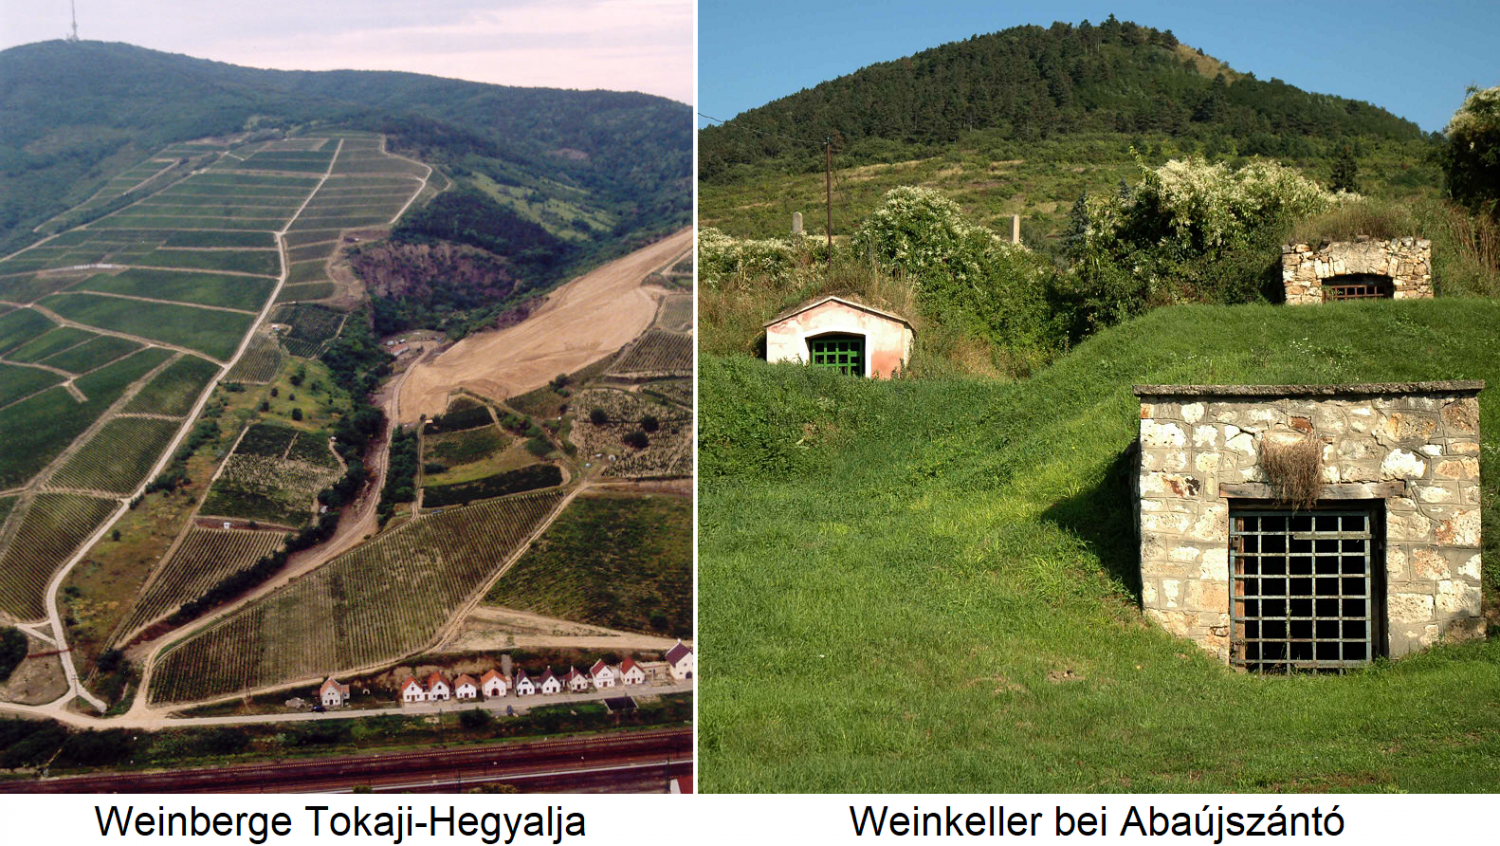 Tokaj - Tokaji-Hegyalja vineyards and wine cellars at Abaújszántó